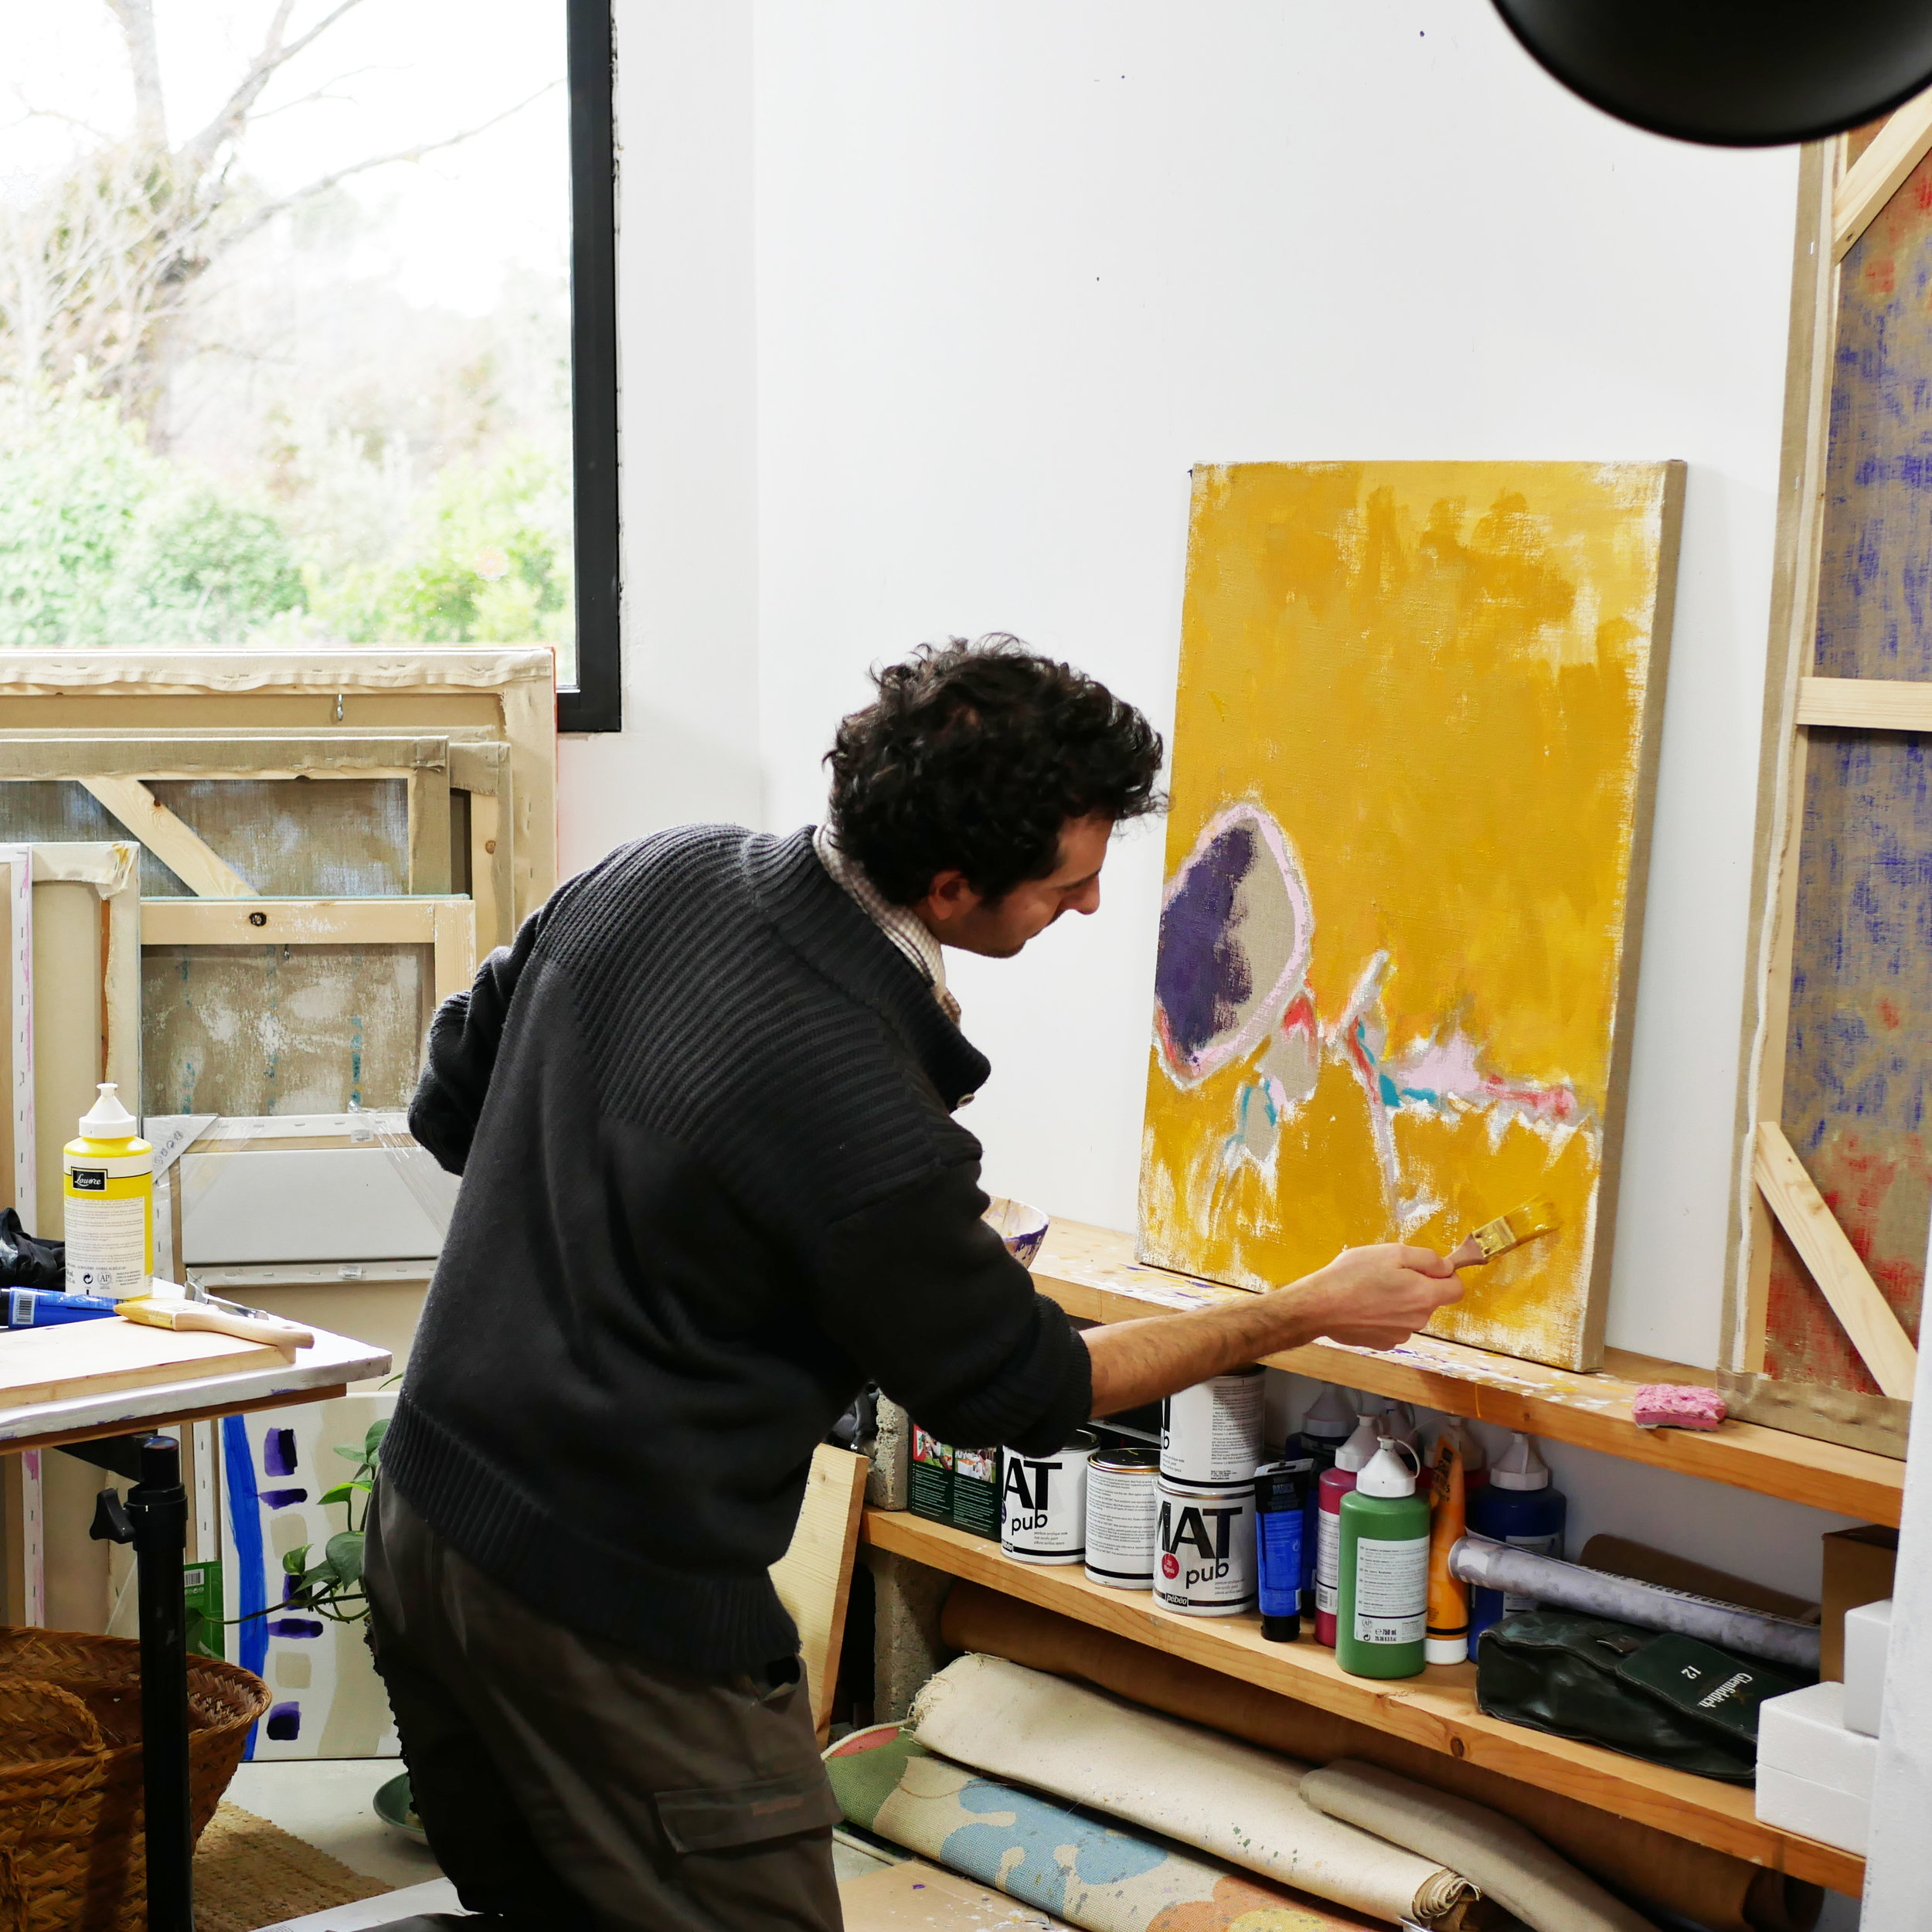 LUDOLIPON - Ludovic Philippon is from Rochefort sur Mer, town of Maurice Merleau Ponty and Pierre Loti. After studying architecture and philosophy in Montpellier, he now devotes time to his painting in his studio located north of Montpellier, France.